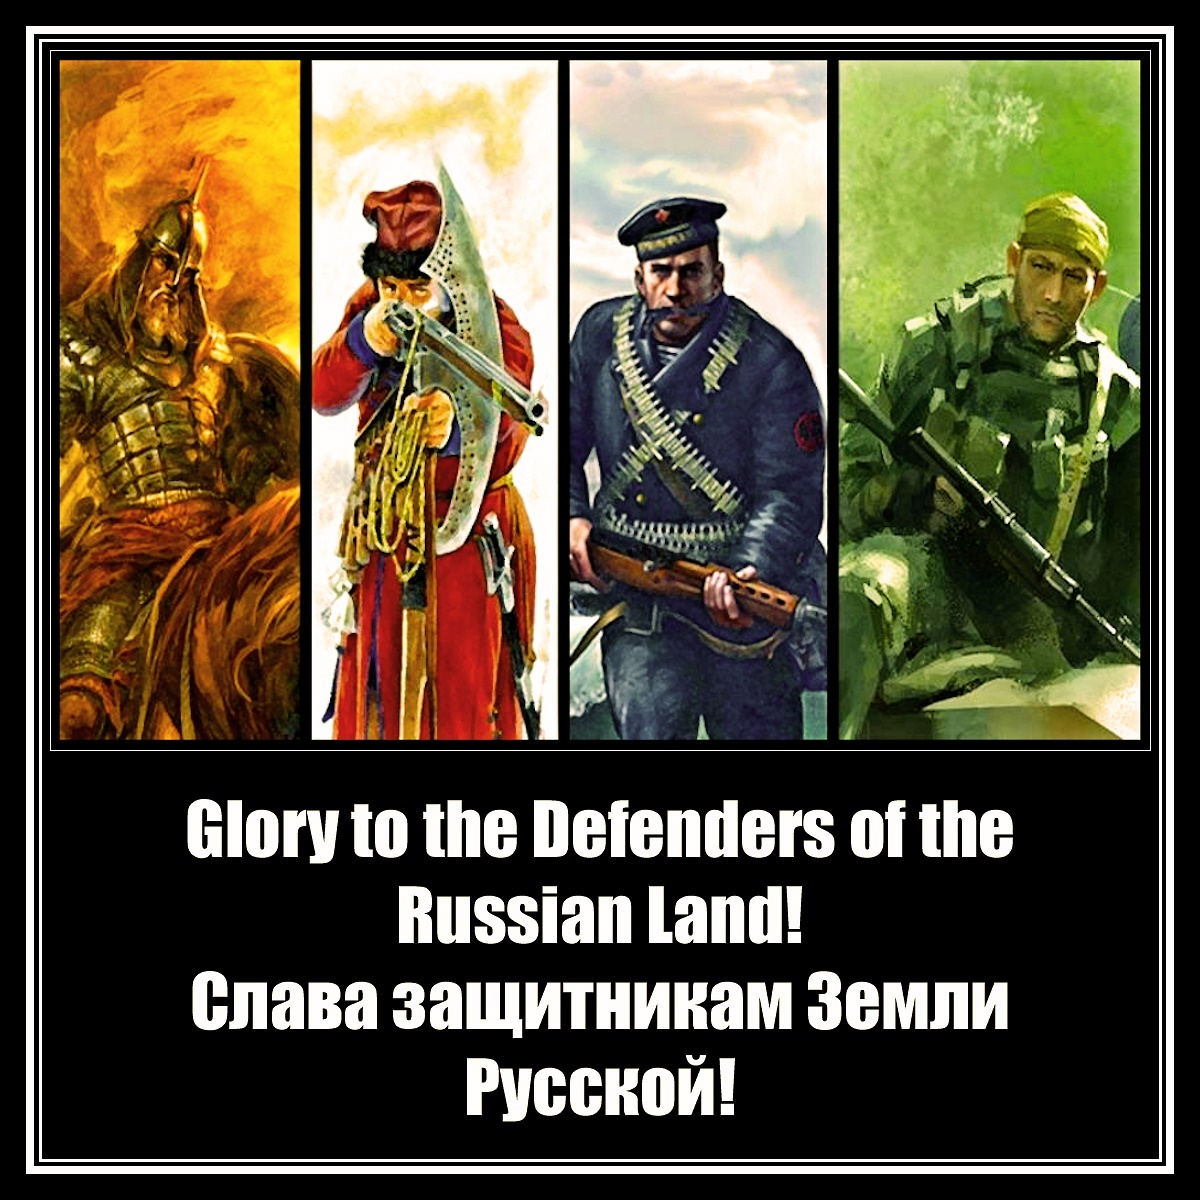 00 Glory to the Defenders of the Russian Land. 25.09.14